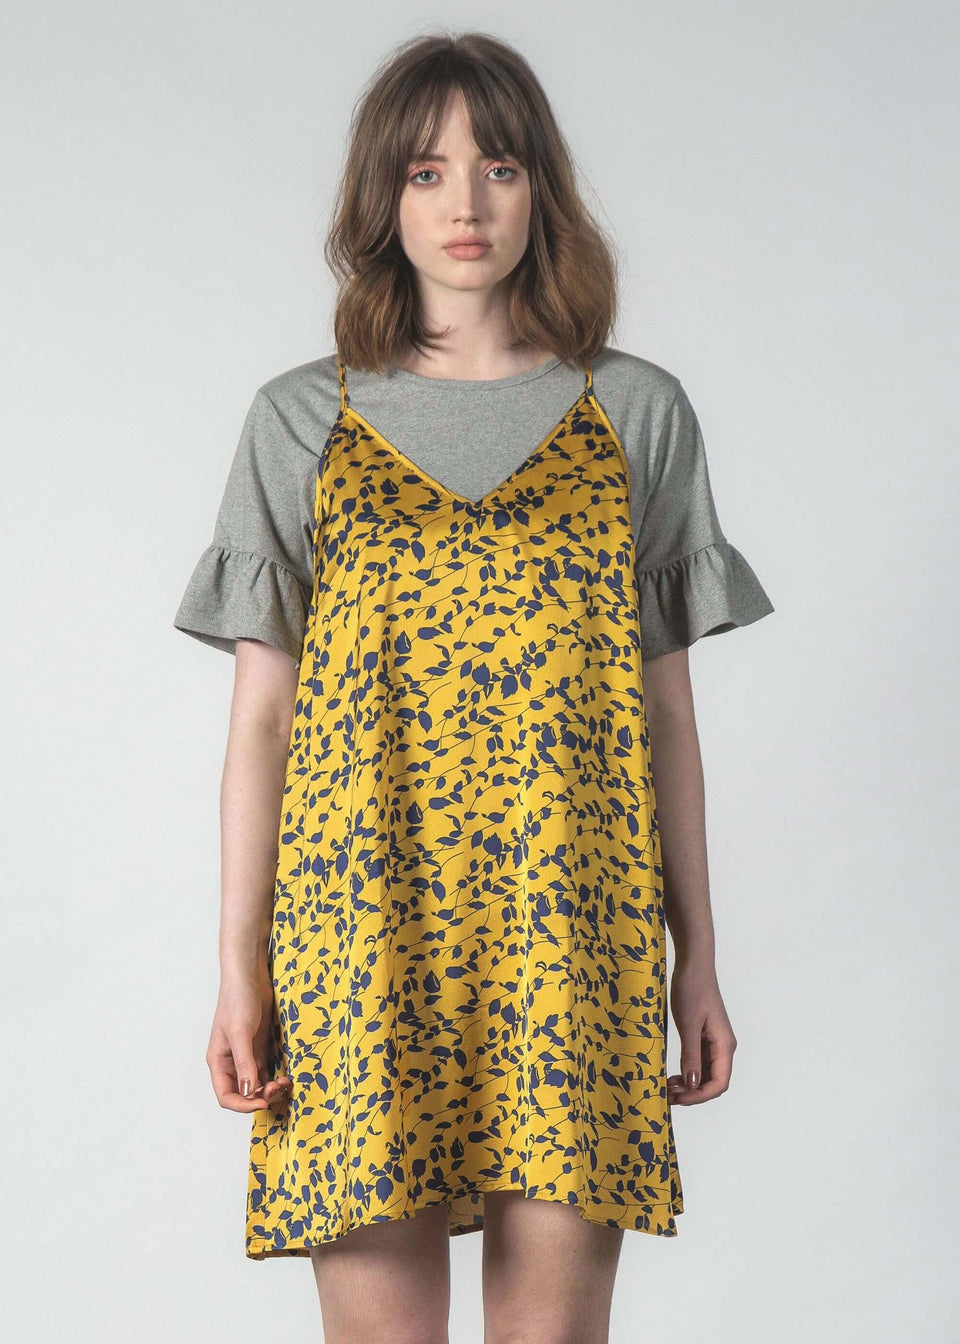 Finest Dress Canary Floral - Saint Street